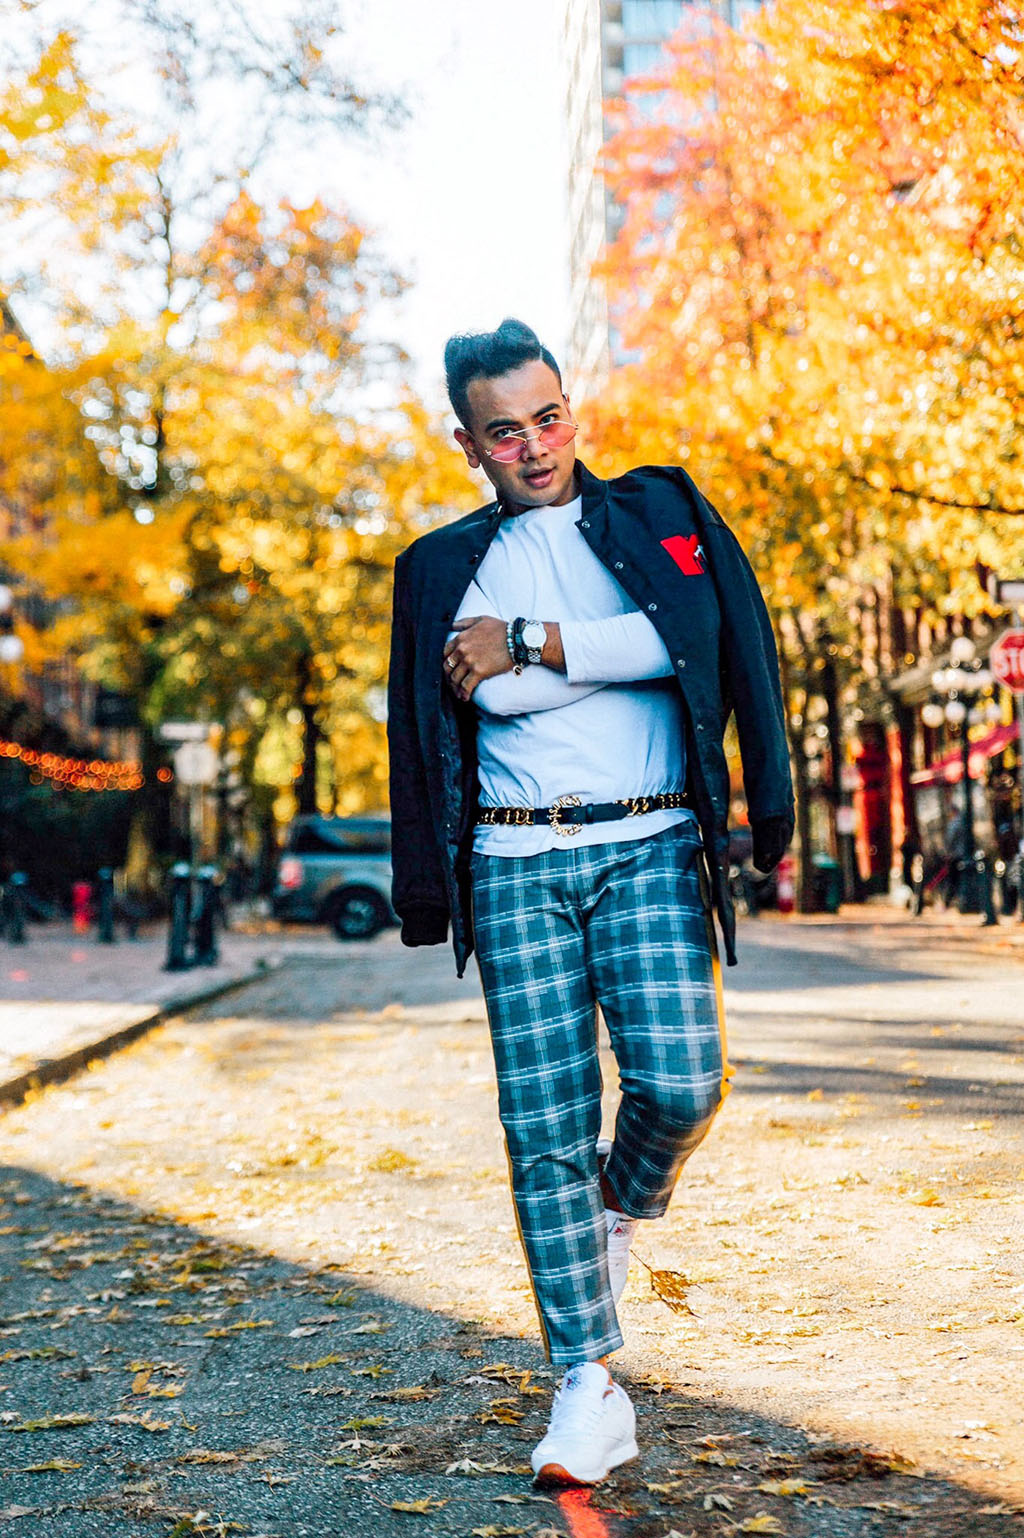 Influencer_Jonathan Waiching Ho_Toronto Fashion Blogger_Vancouver Fashion Blogger_HMoschino_OOTD in Vancouver Top Influencer_1